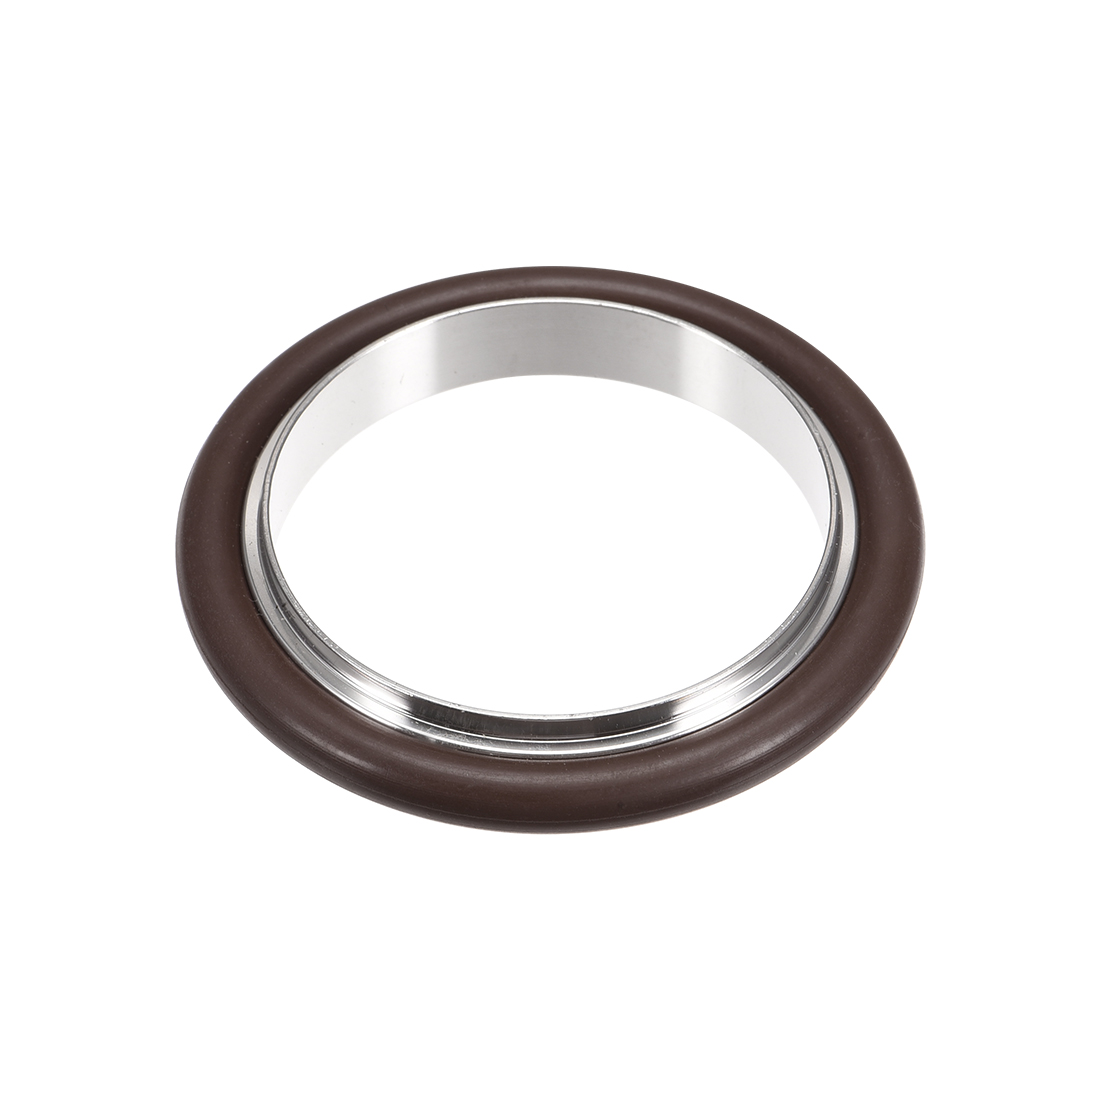 Centering Ring KF-16 Vacuum Fittings ISO-KF Flange 53mm x 39.7mm